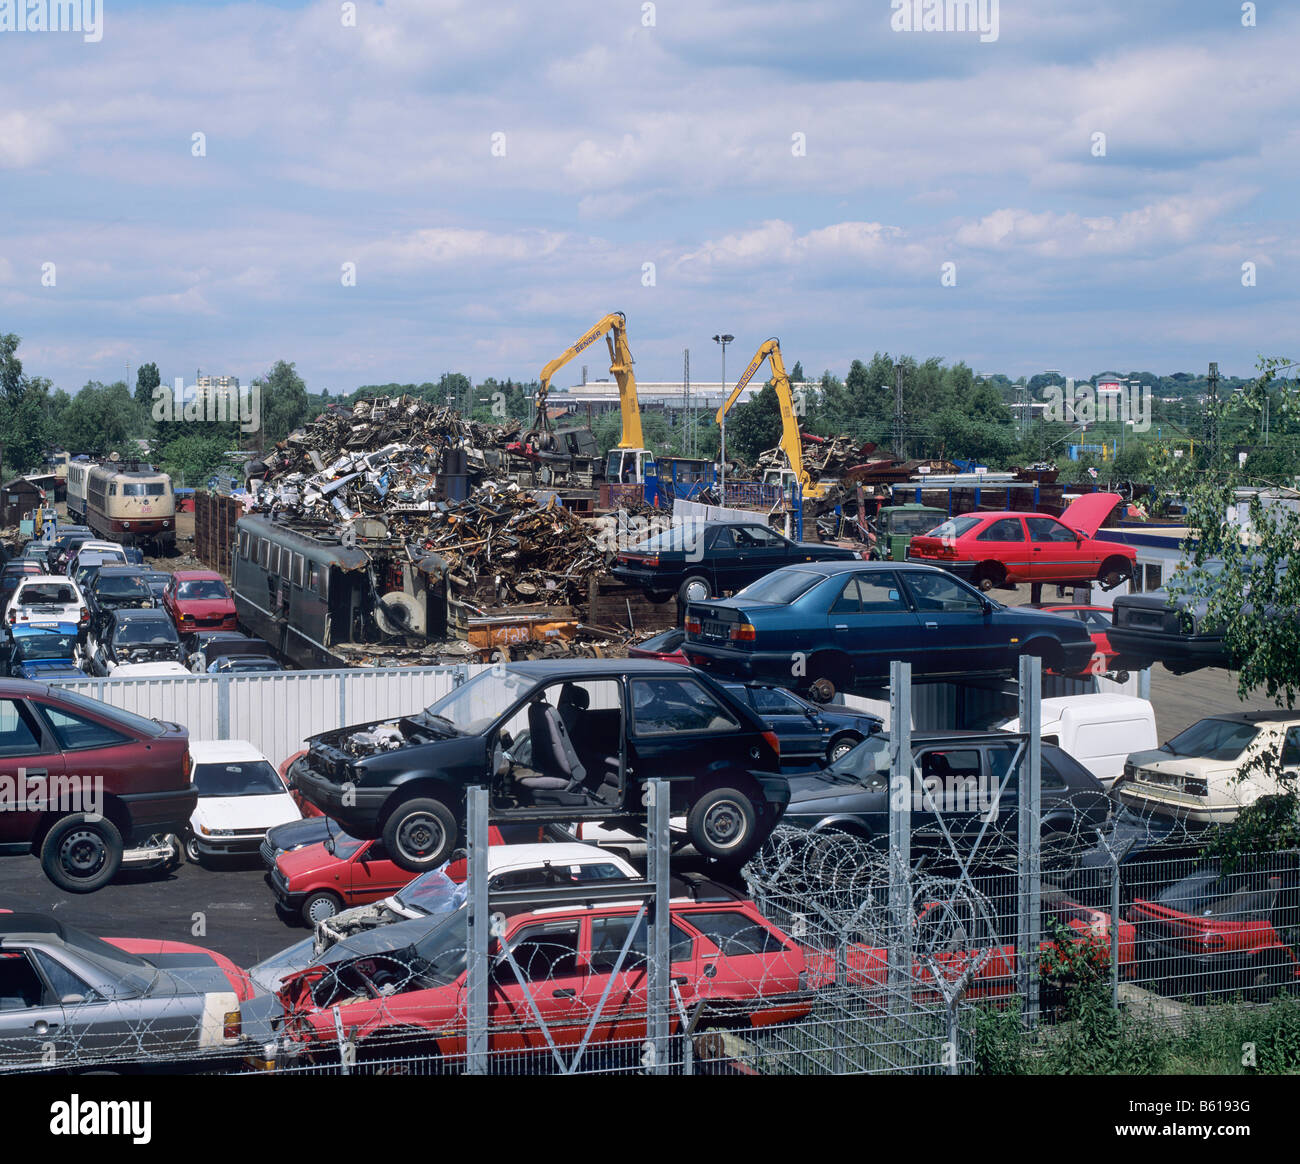 View of a scrap metal collection point, car chassis, pile of metal rubbish - Stock Image